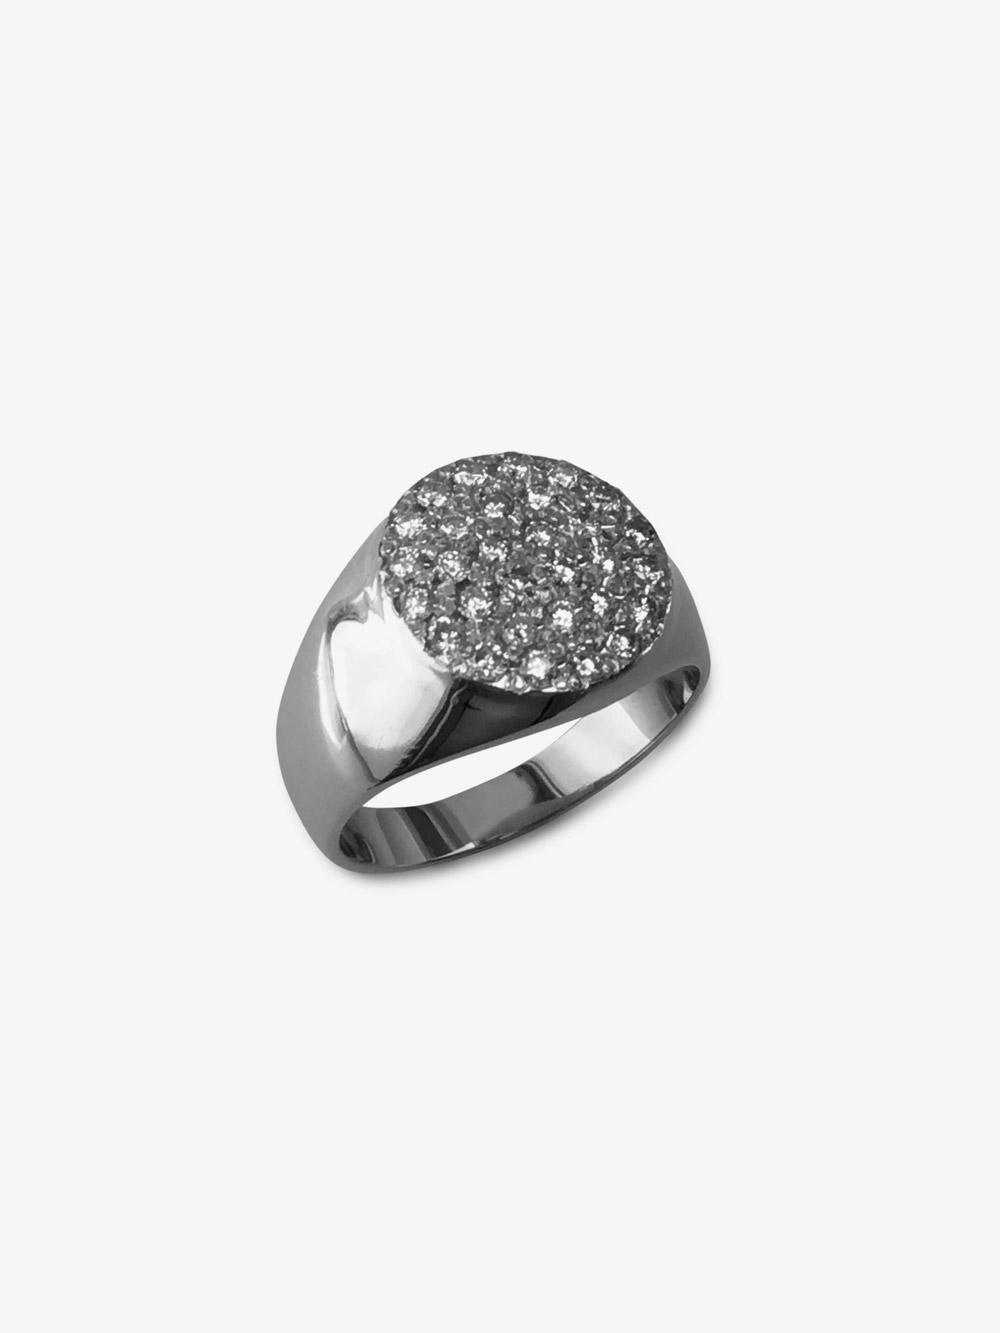 Example of Client Fashion Ring